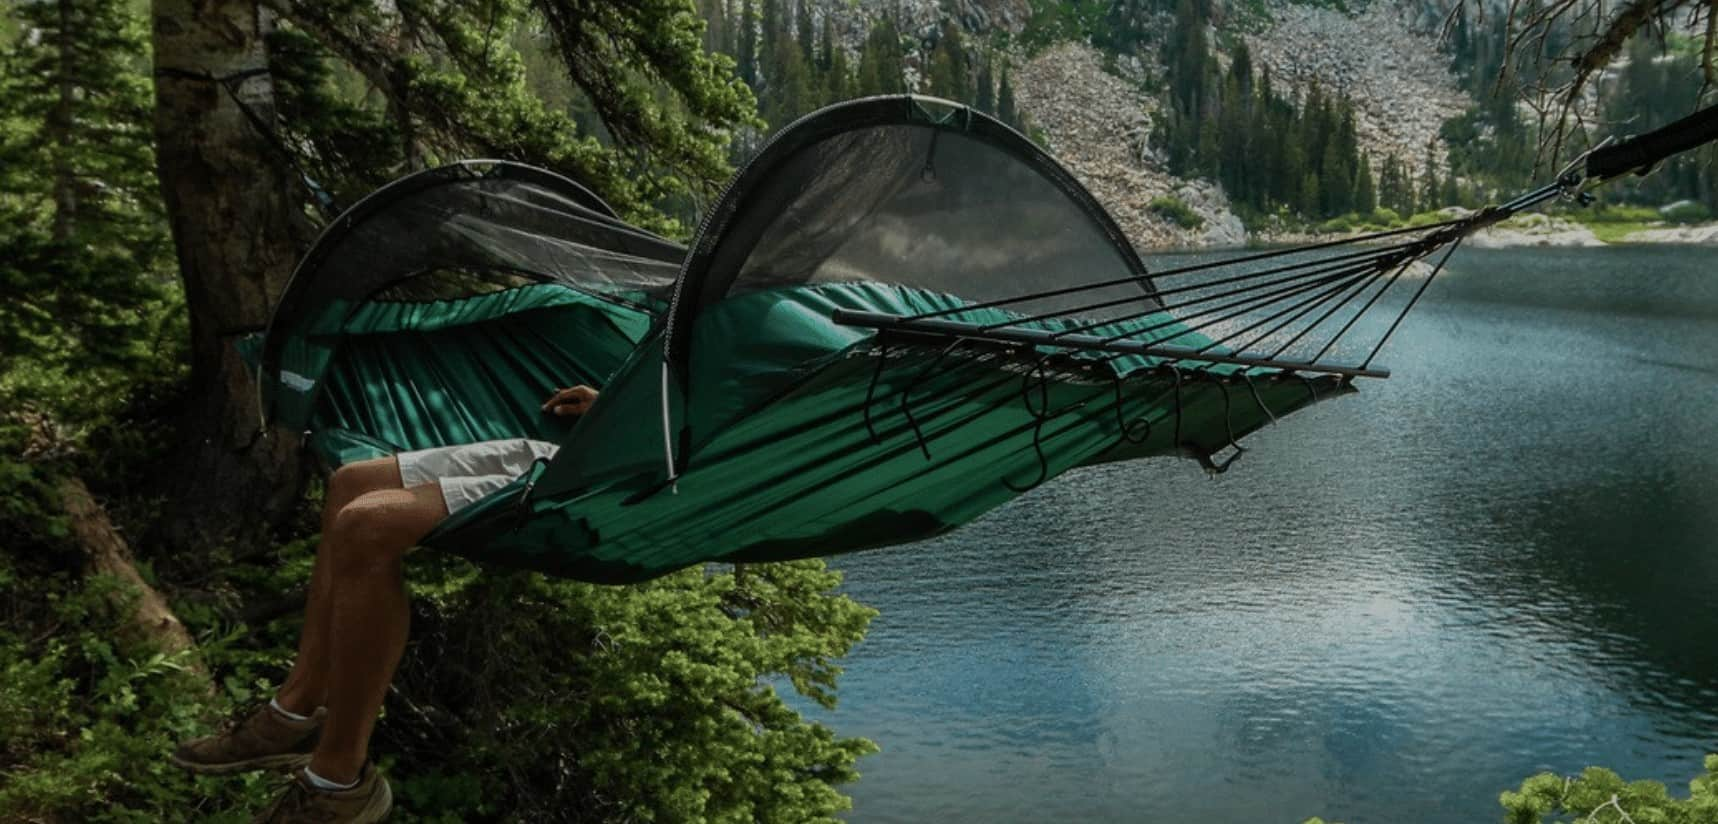 blue ridge camping hammock  uncategorized upgrade your camping with the blue ridge camping hammock   populapp  rh   populapp